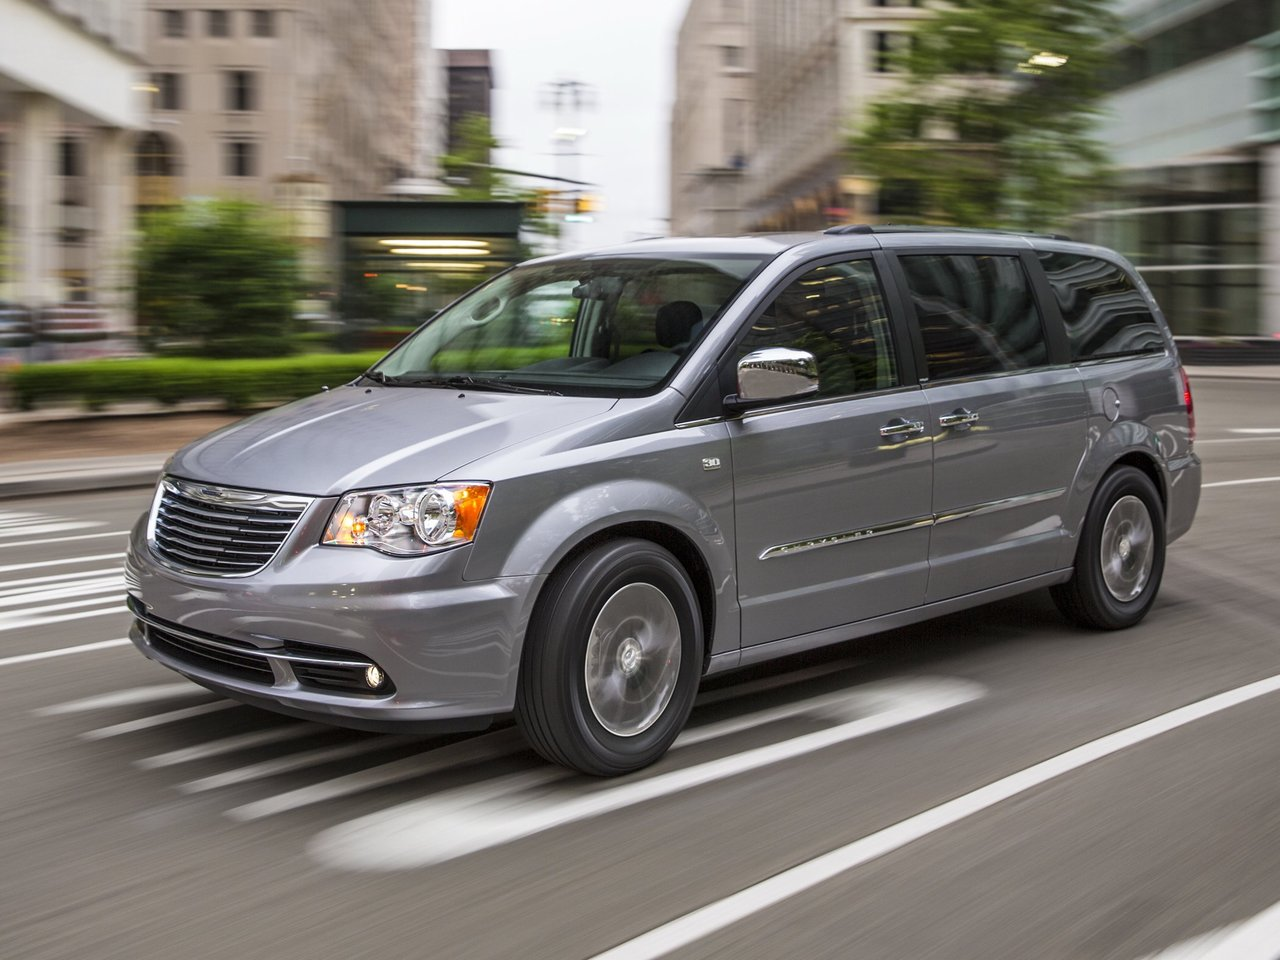 Автомобиль Chrysler Town & Country